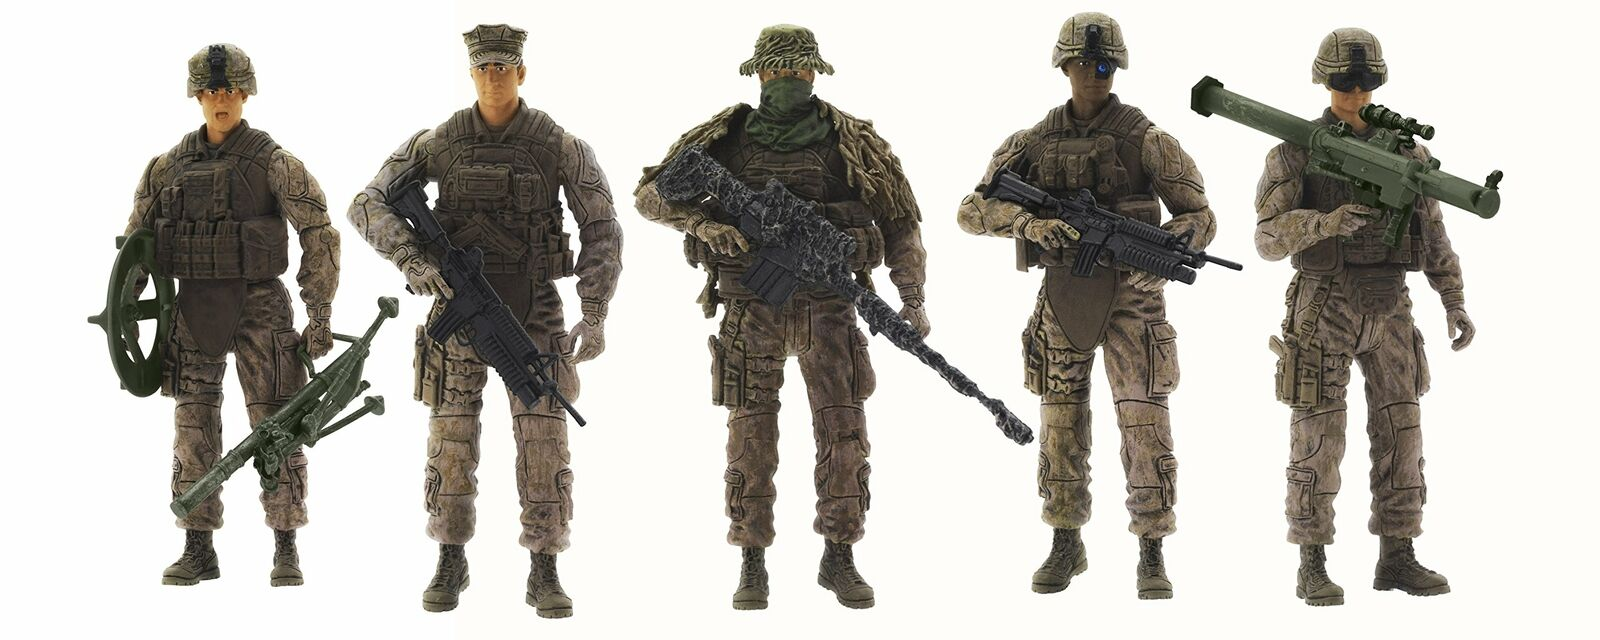 Elite Force Marine Recon Action Figure 118 Scale 5 5 5 Soldier Action Figures New c83a17